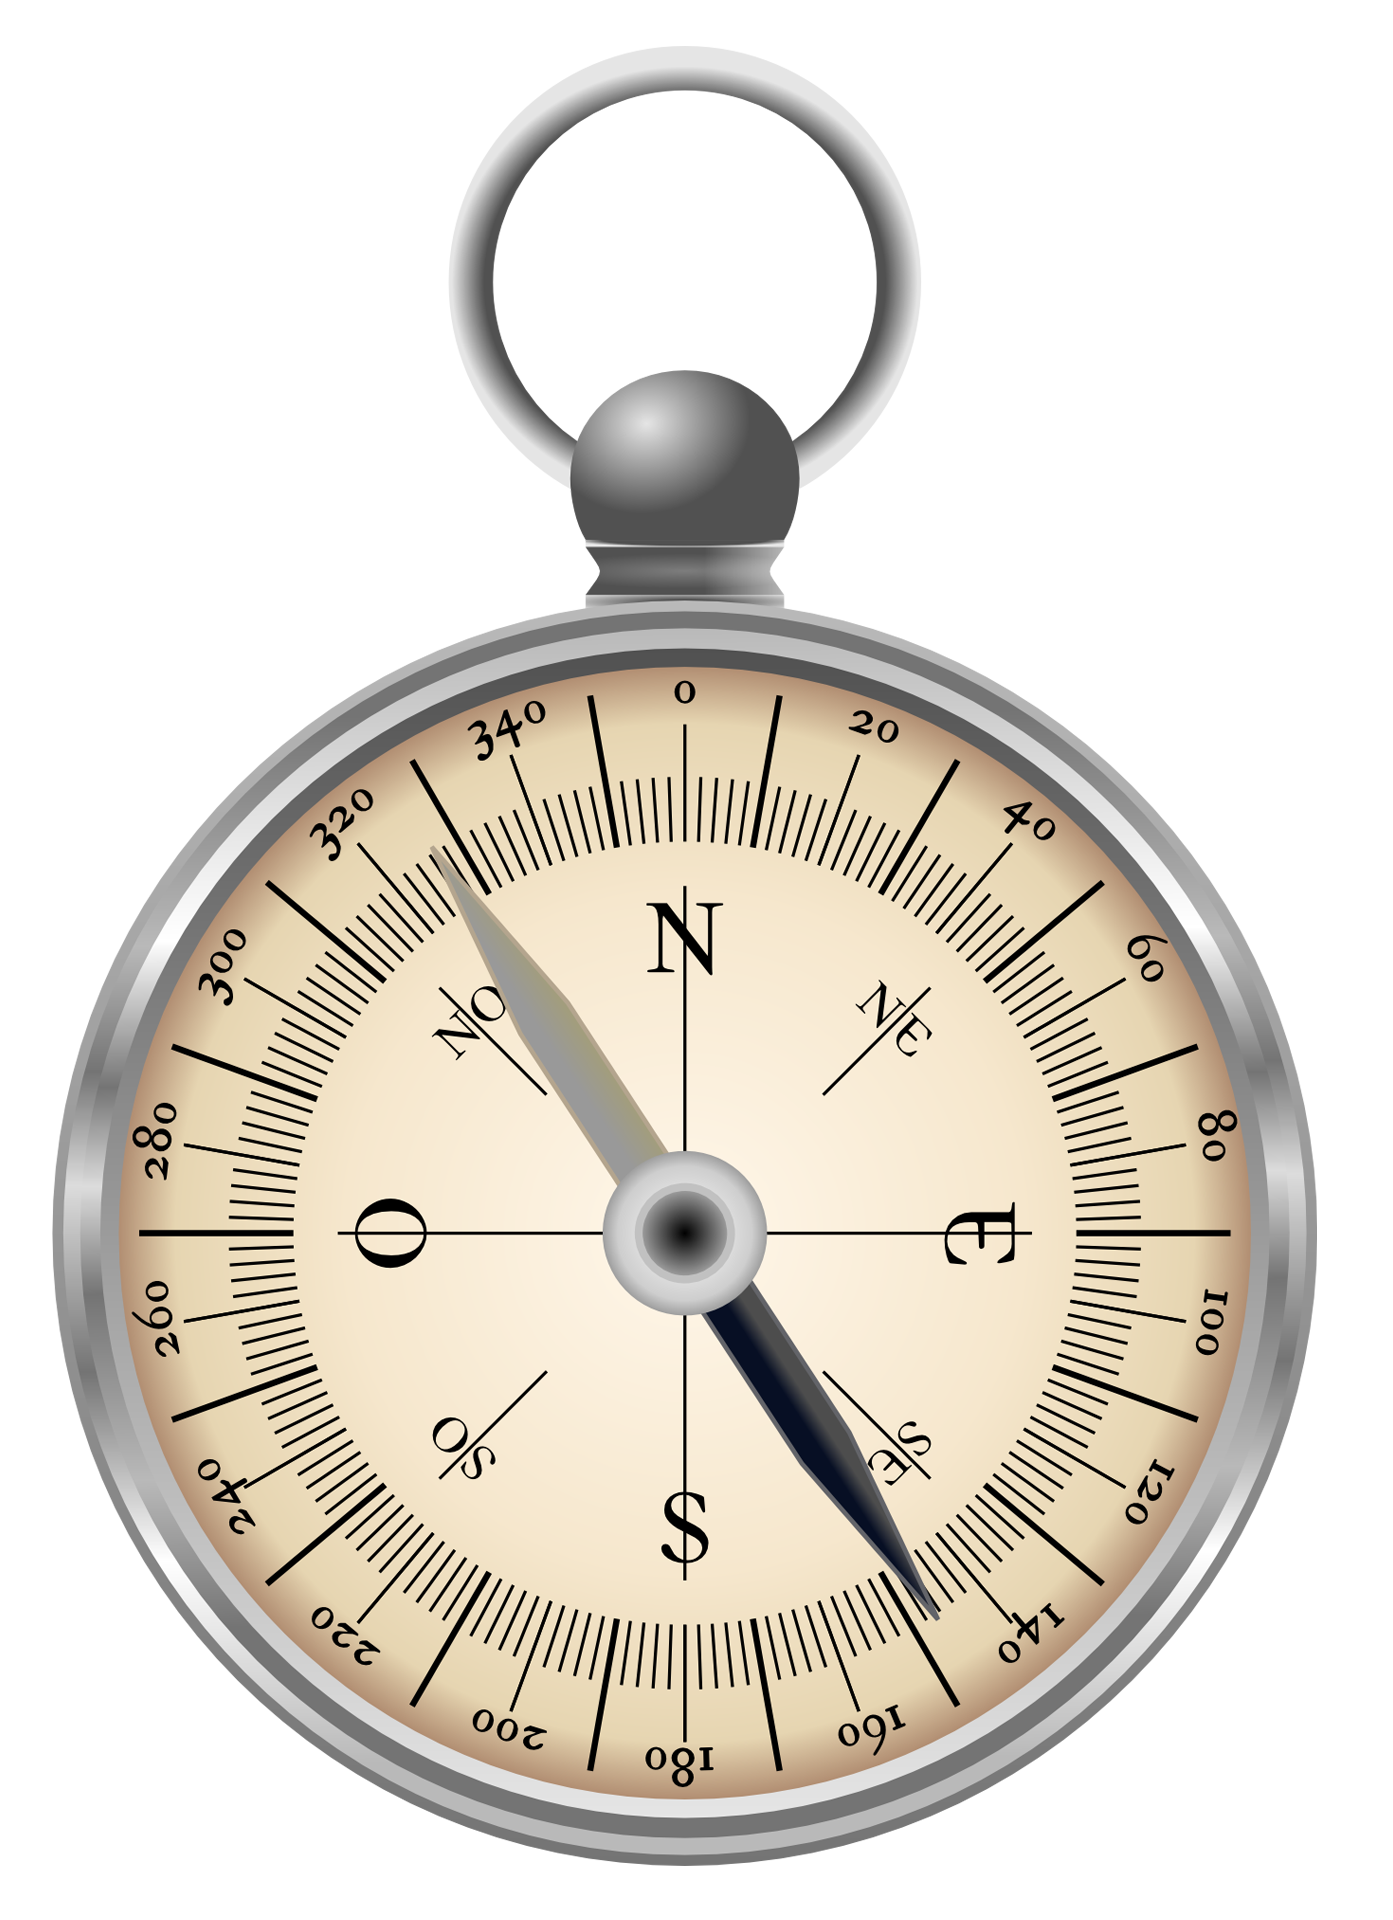 Old compass png. Transparent image pngpix resolution